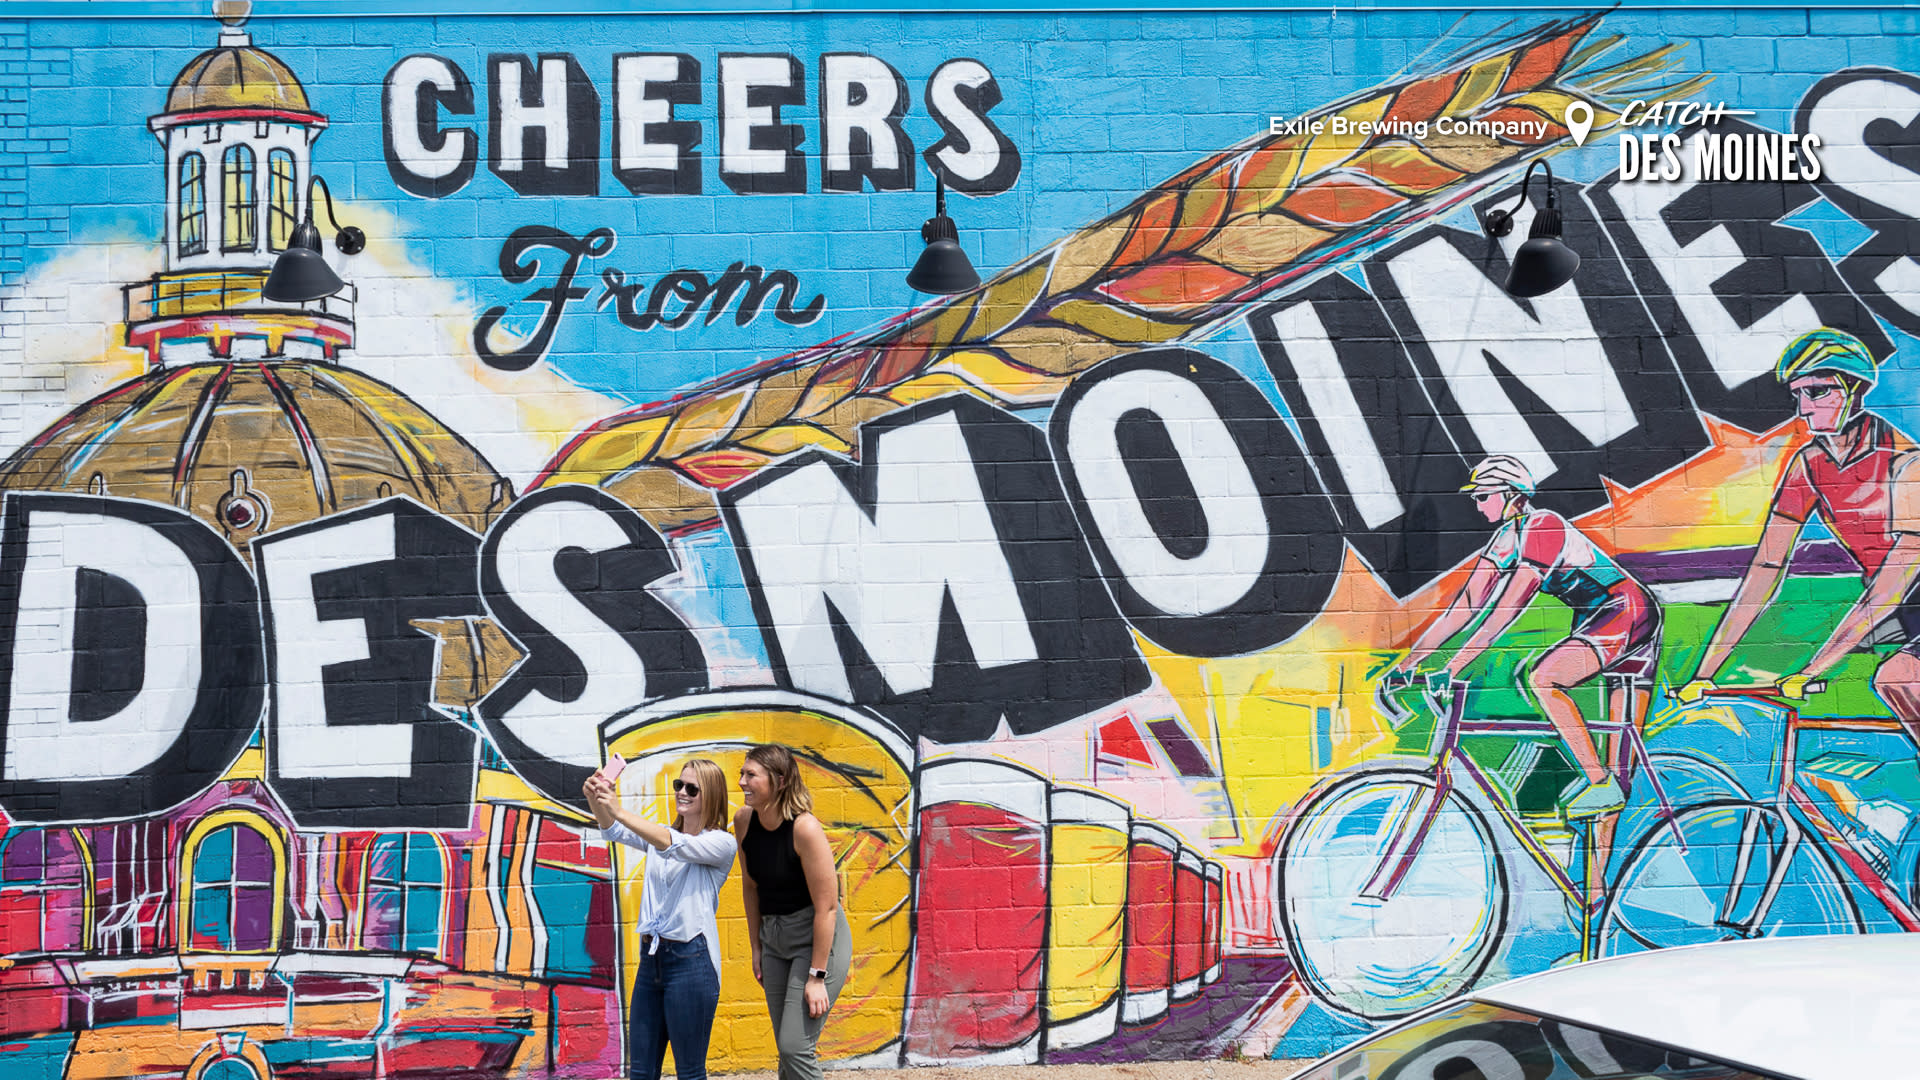 Cheers from Des Moines Wall Mural at Exile Brewing Company Zoom Background